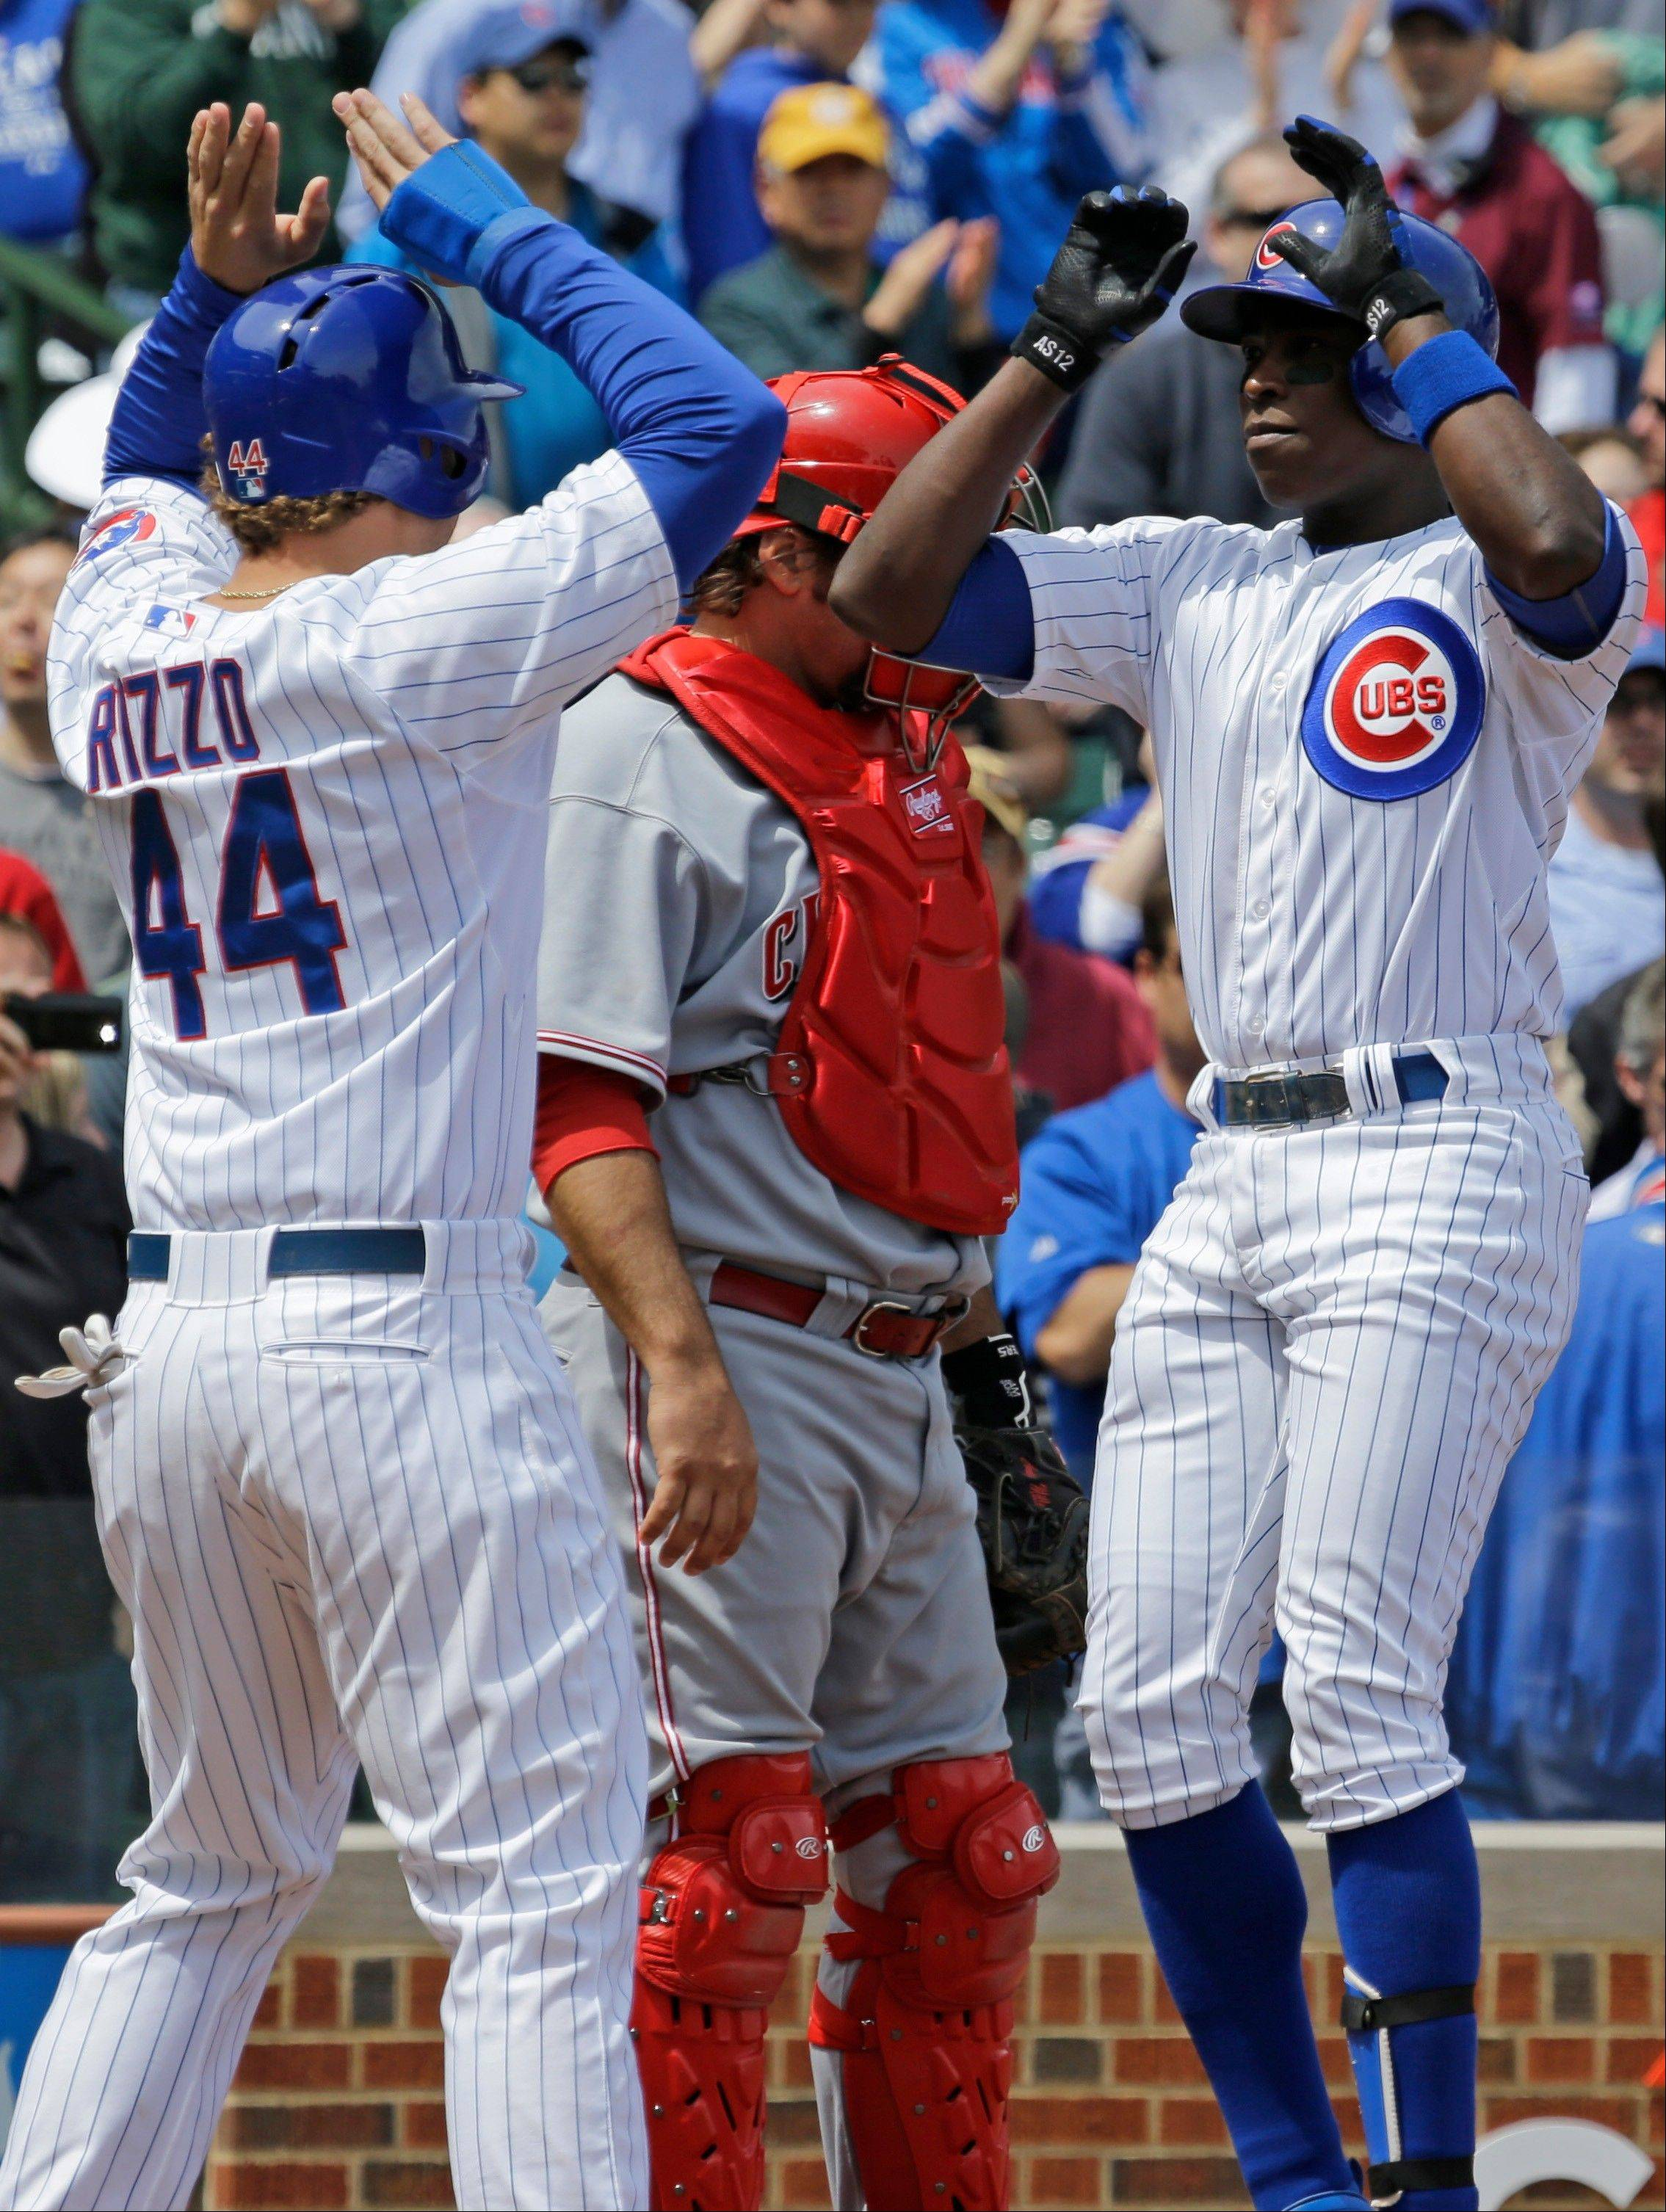 Alfonso Soriano, right, celebrates with Anthony Rizzo after hitting a two-run home run during the first inning of a baseball game against the Cincinnati Reds in Chicago, Saturday, May 4, 2013.